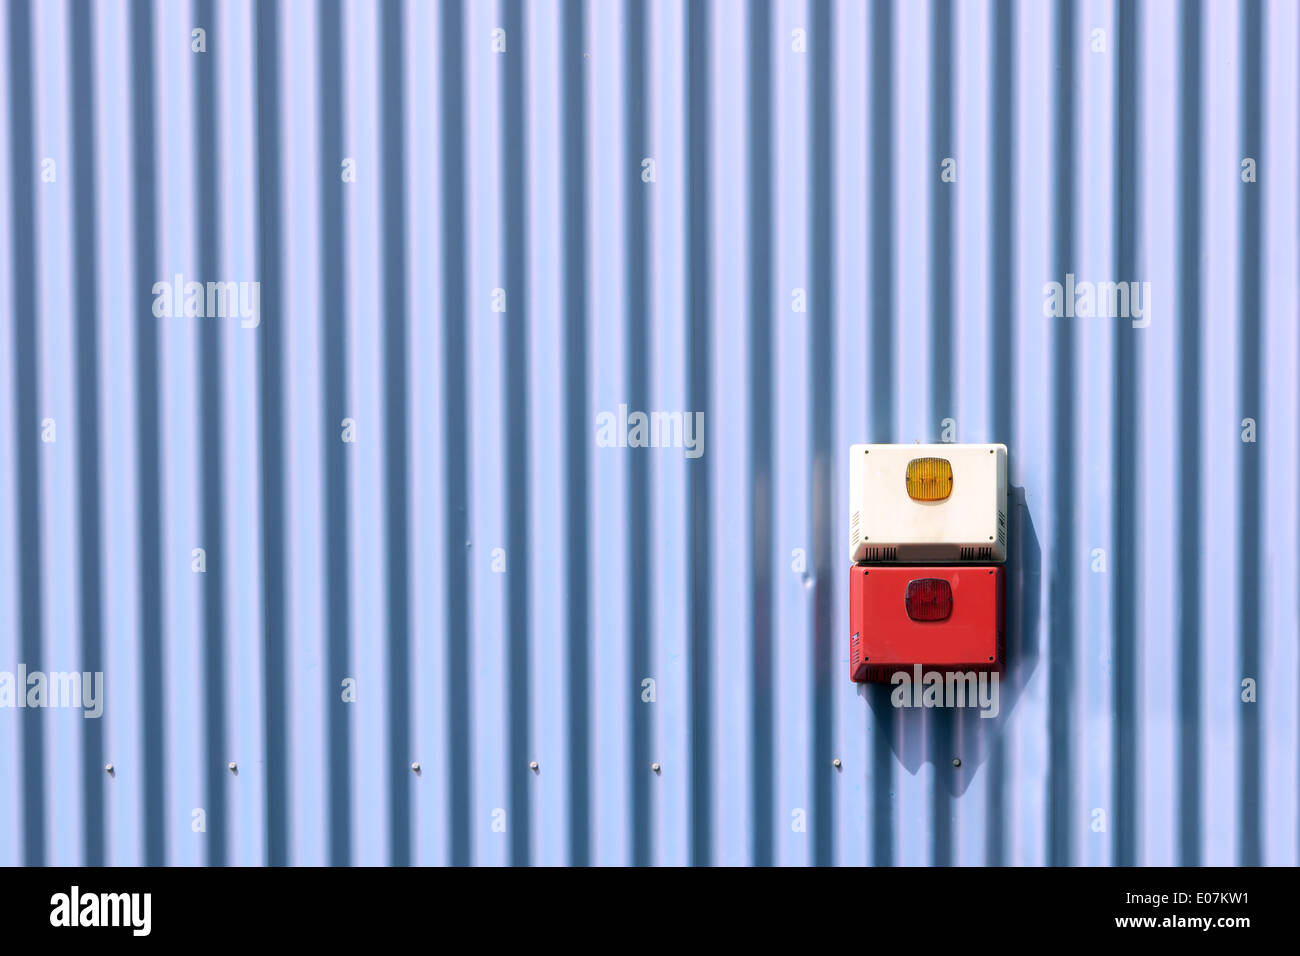 seucurity system with alarm on industrial wall - Stock Image